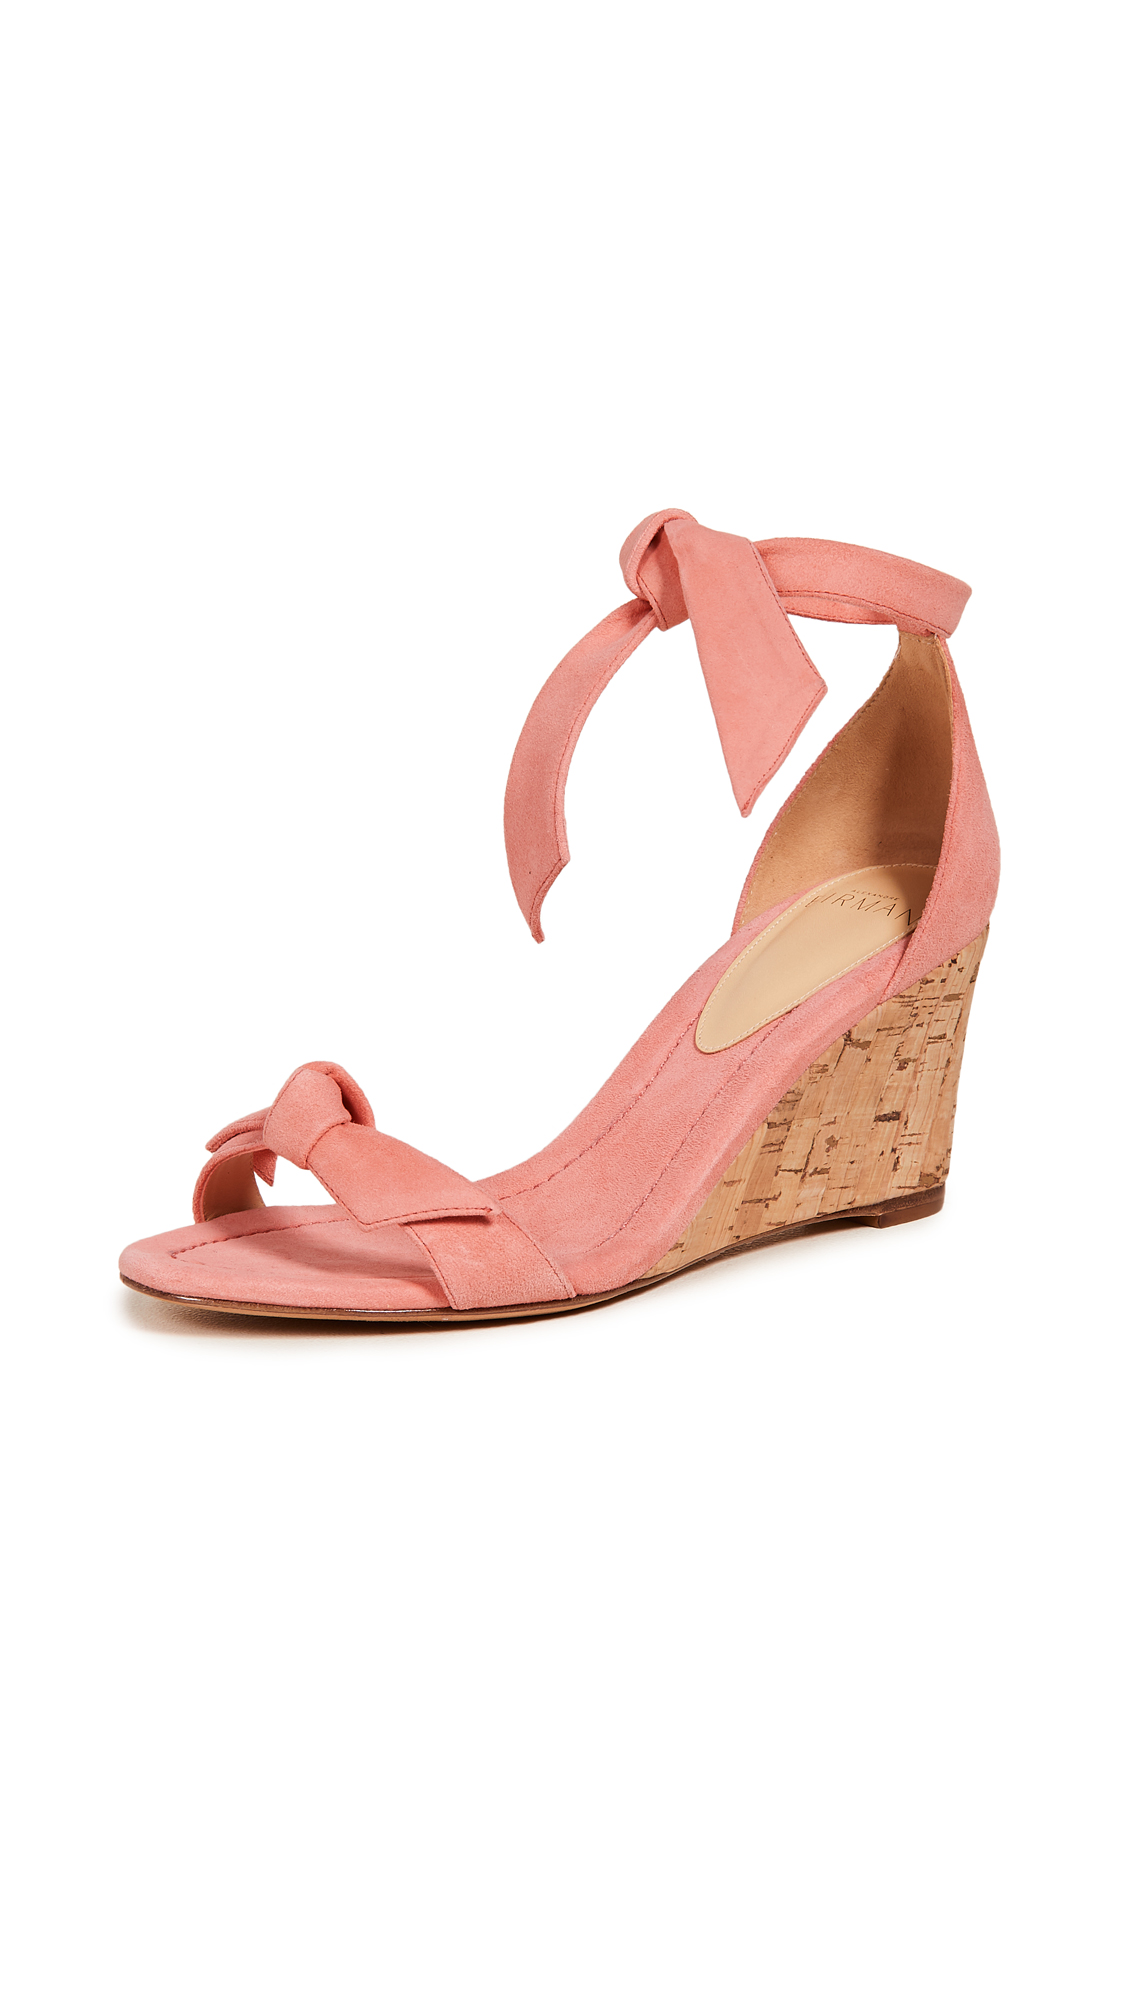 Alexandre Birman Clarita Demi 75mm Wedge Sandals - Papaya/Natural